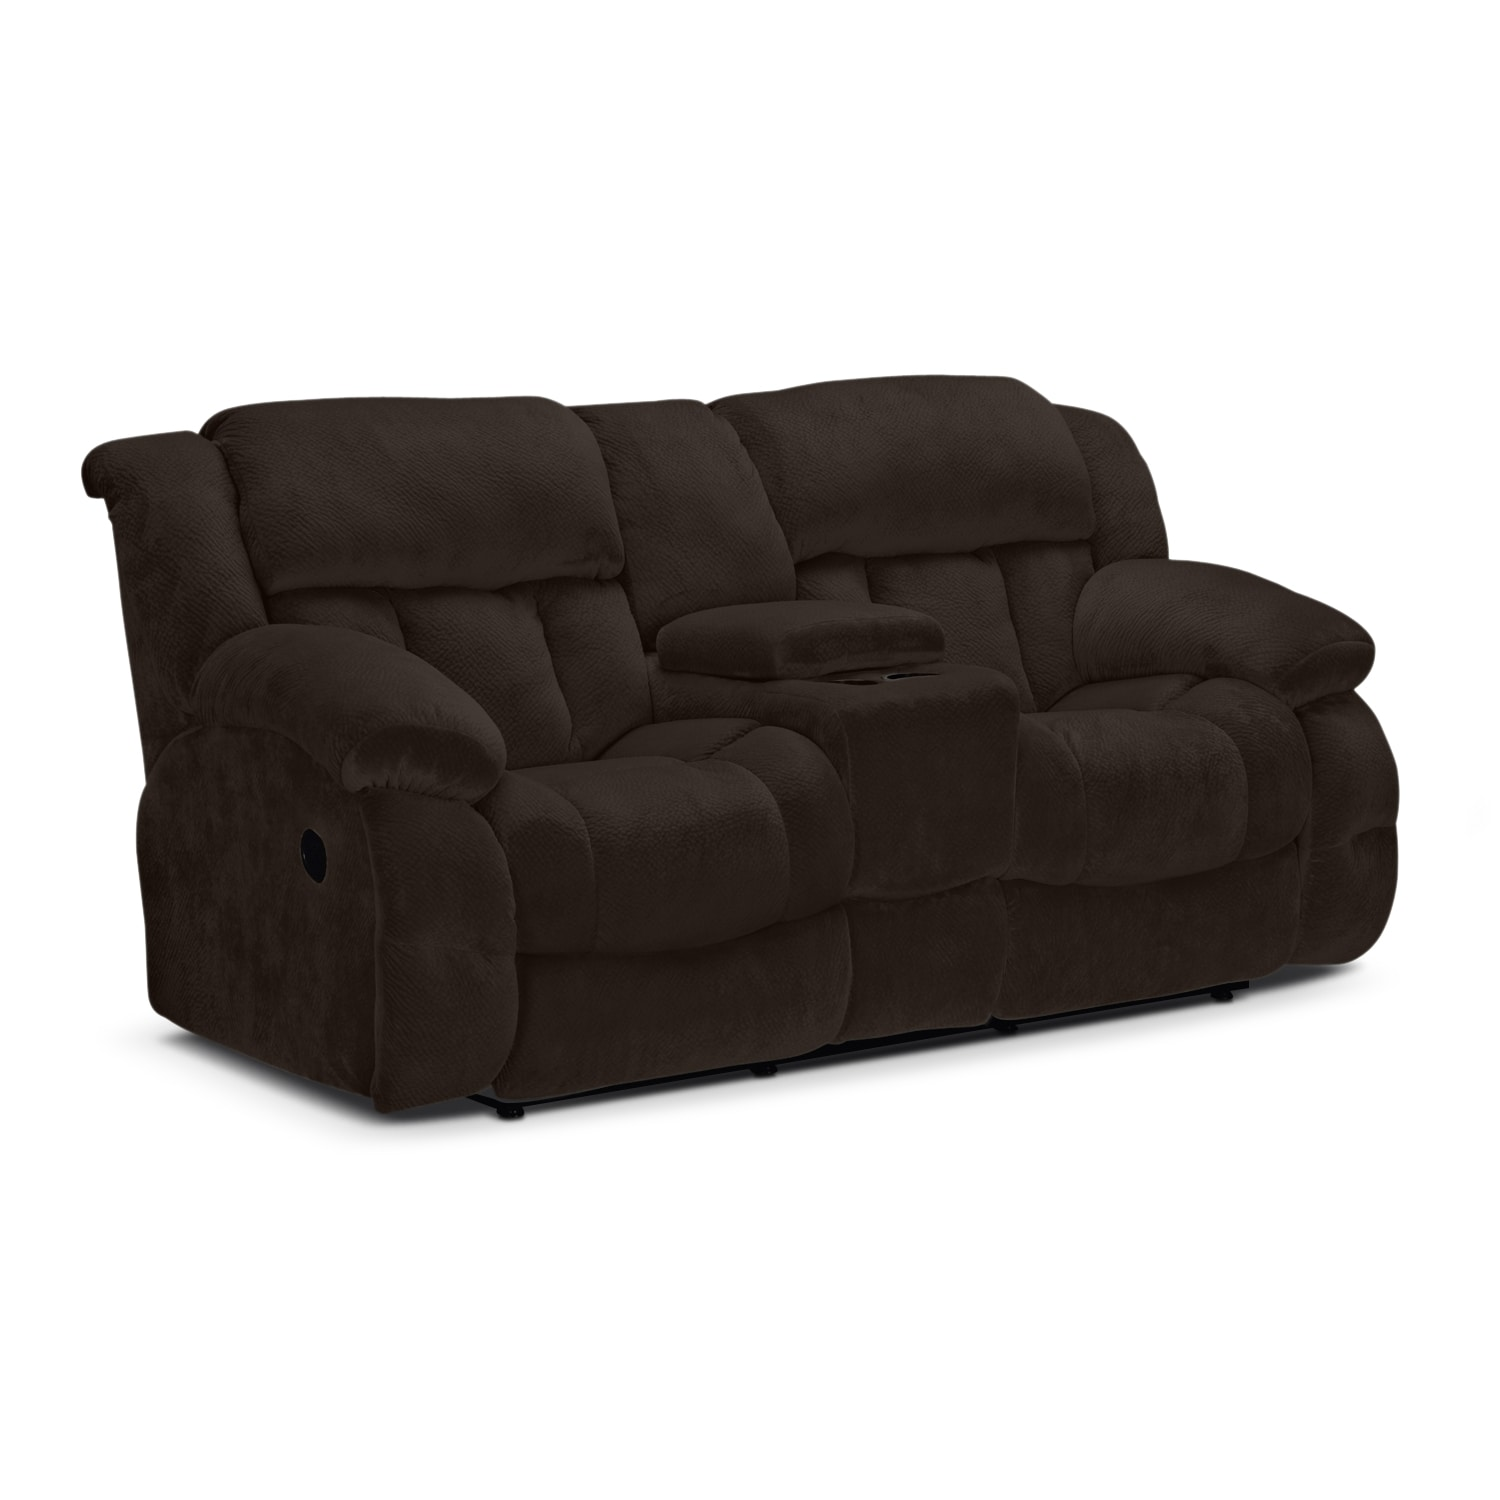 Park City III Dual Reclining Loveseat